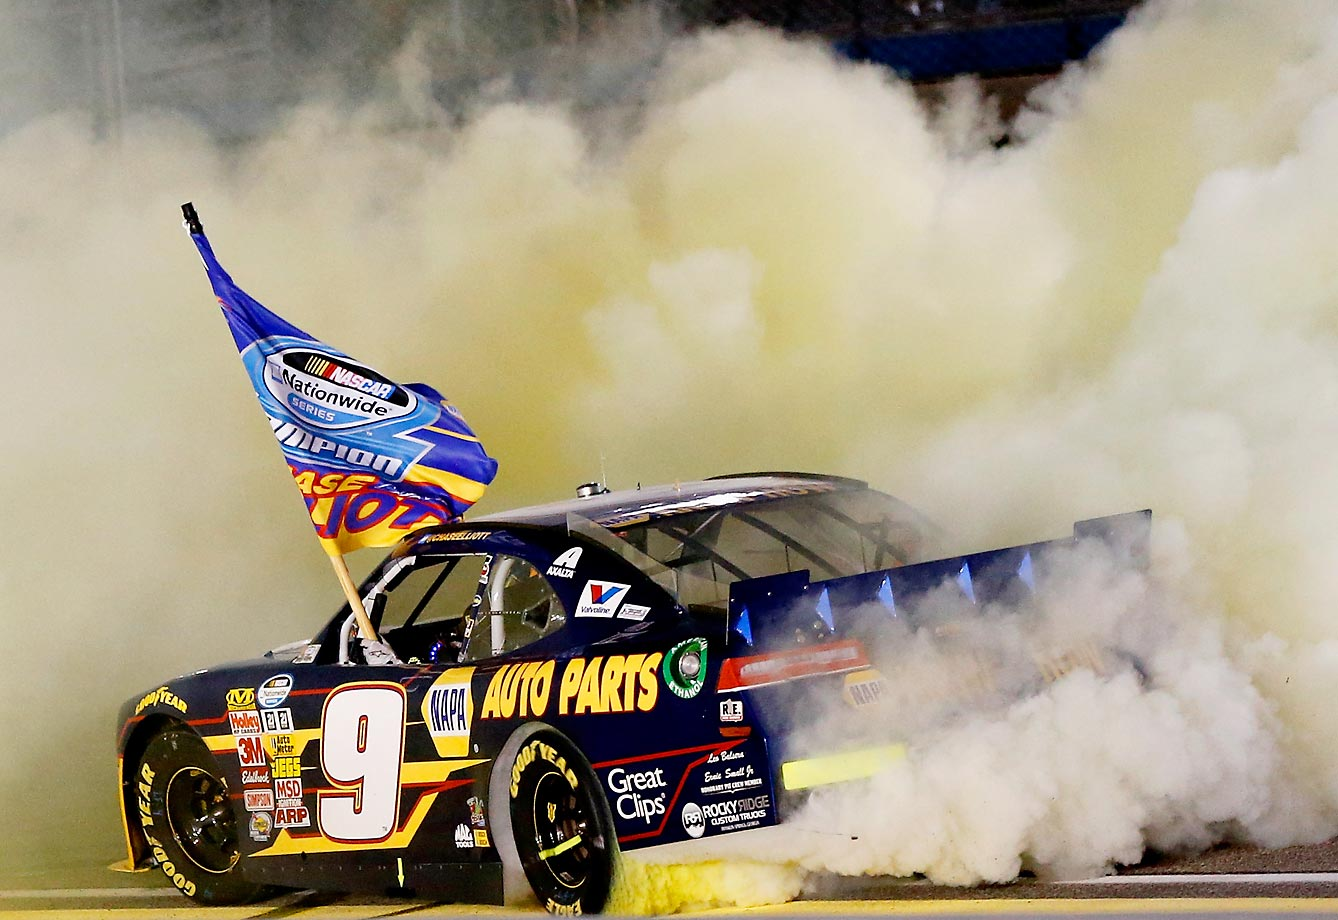 Chase Elliott celebrates winning the series championship with a burnout during the NASCAR Nationwide Series Ford EcoBoost 300.